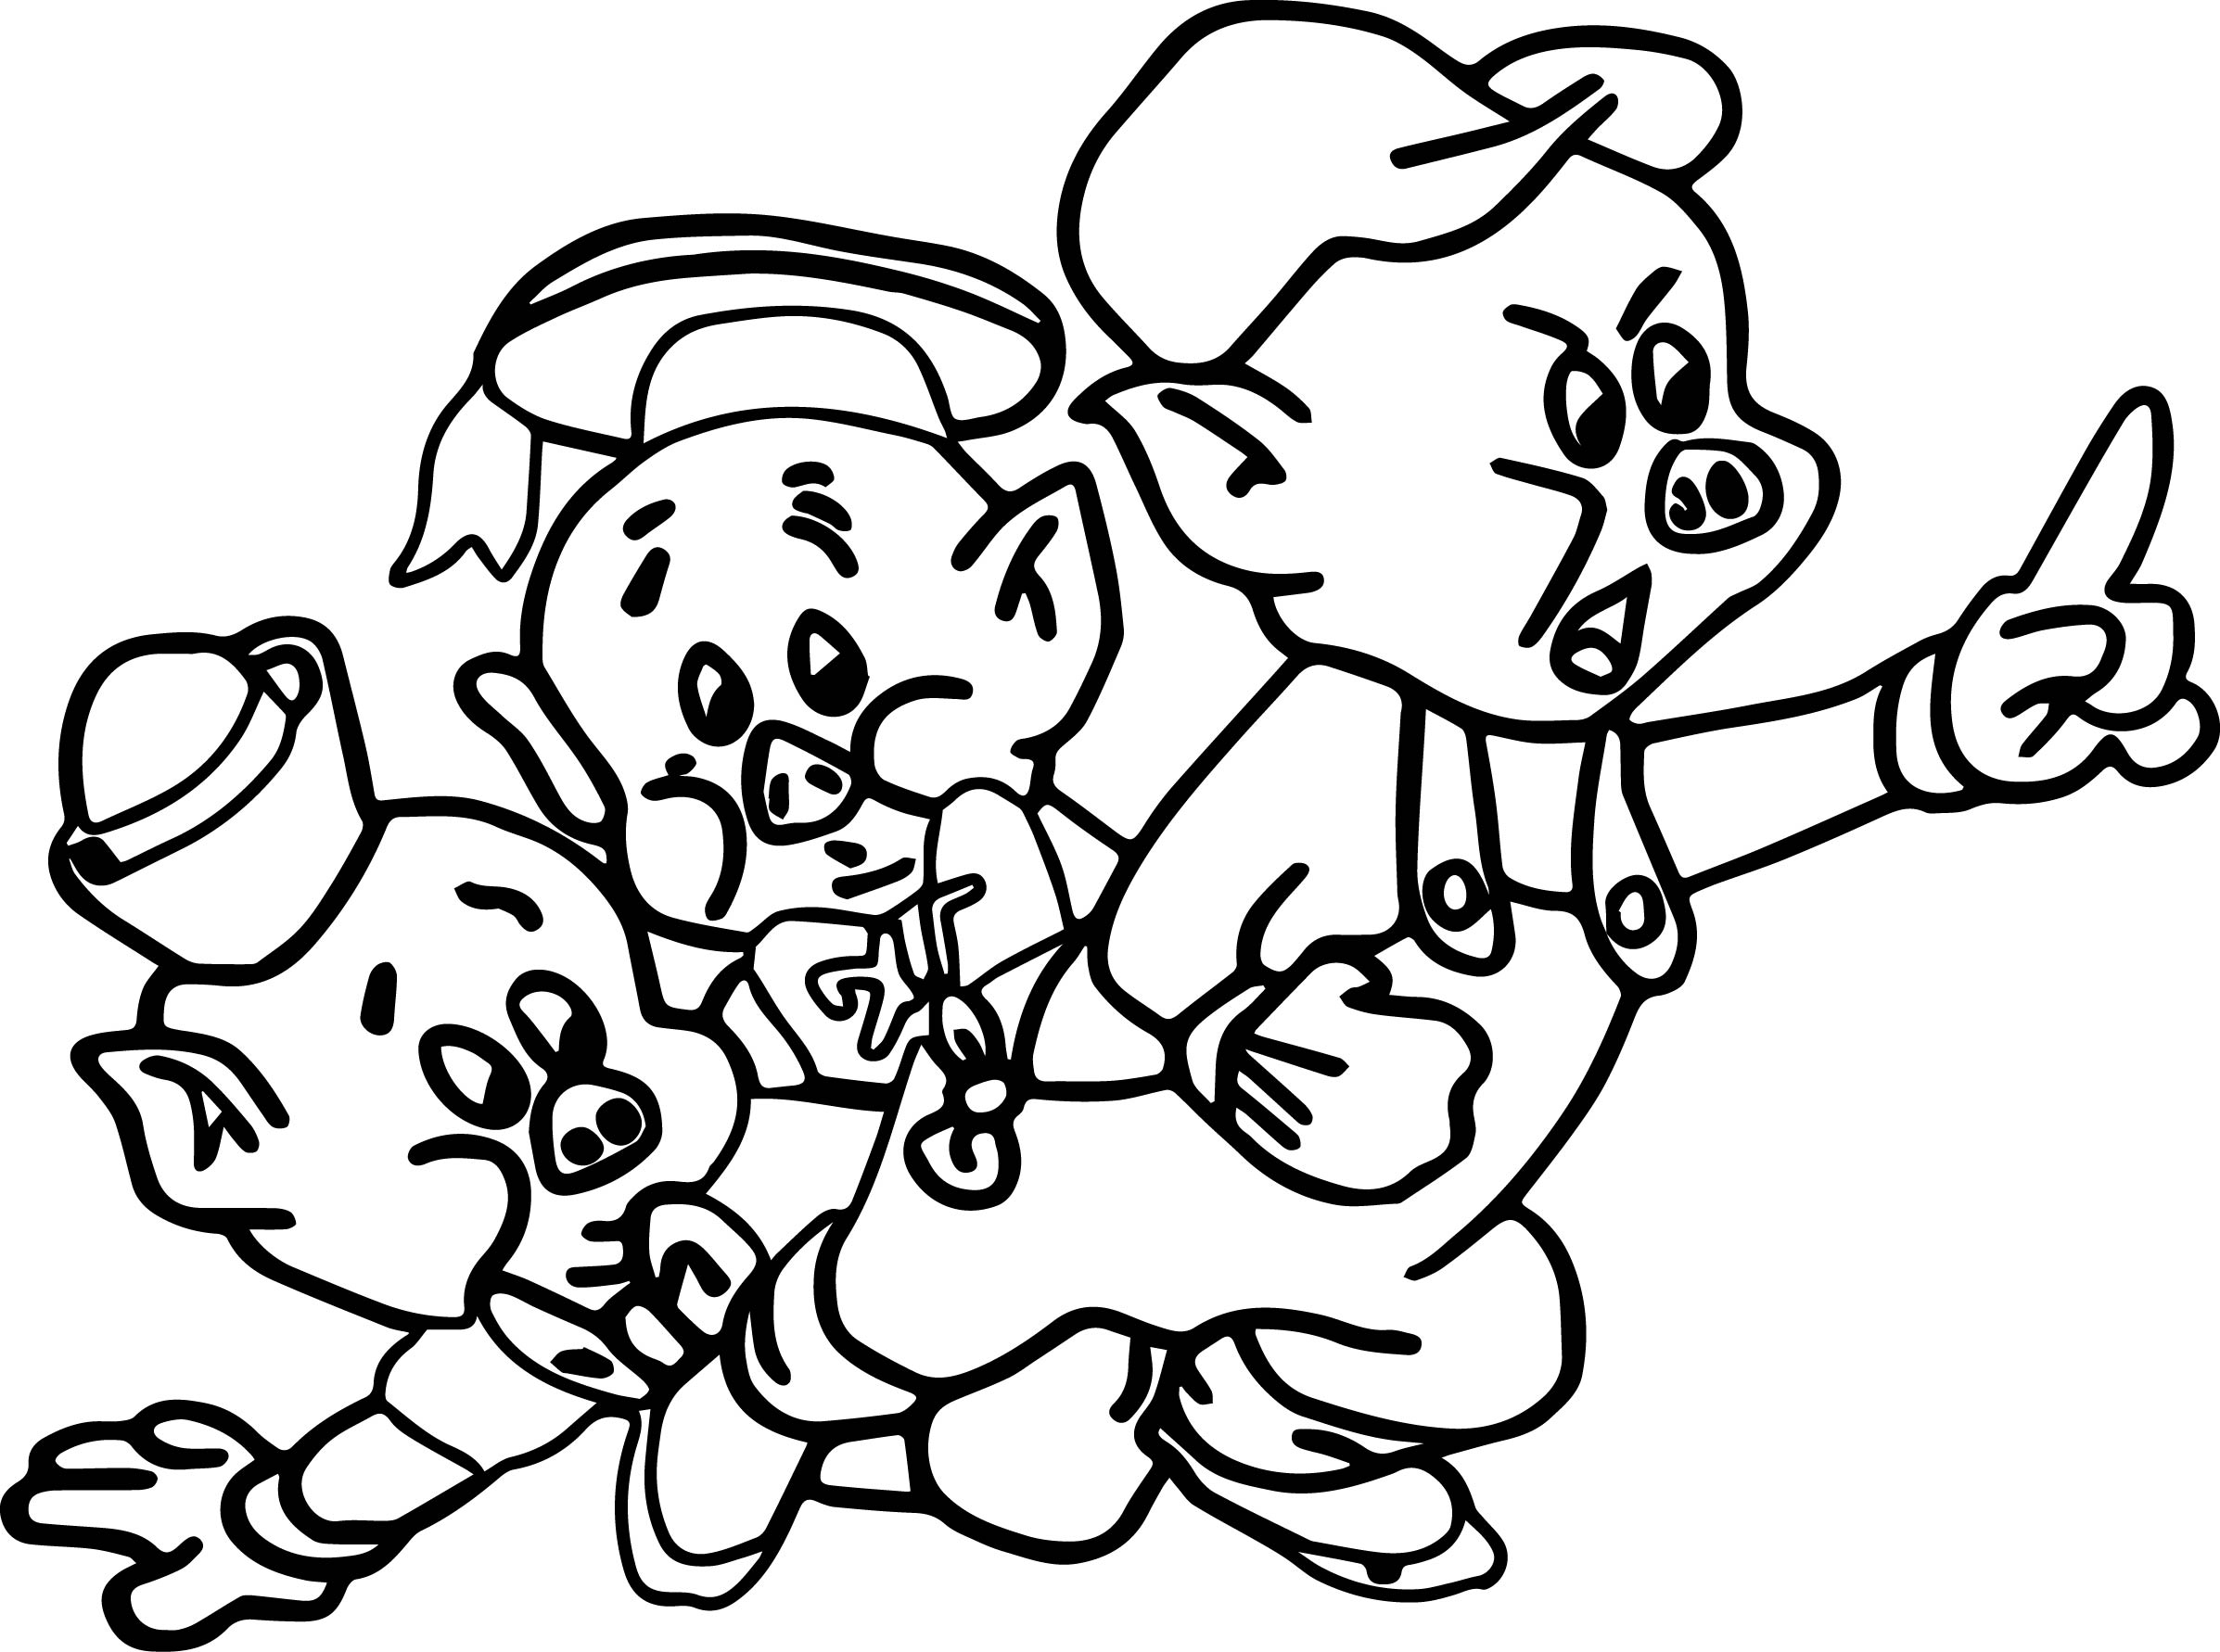 3 little pigs coloring page three little pigs houses coloring pages at getcolorings page pigs 3 little coloring